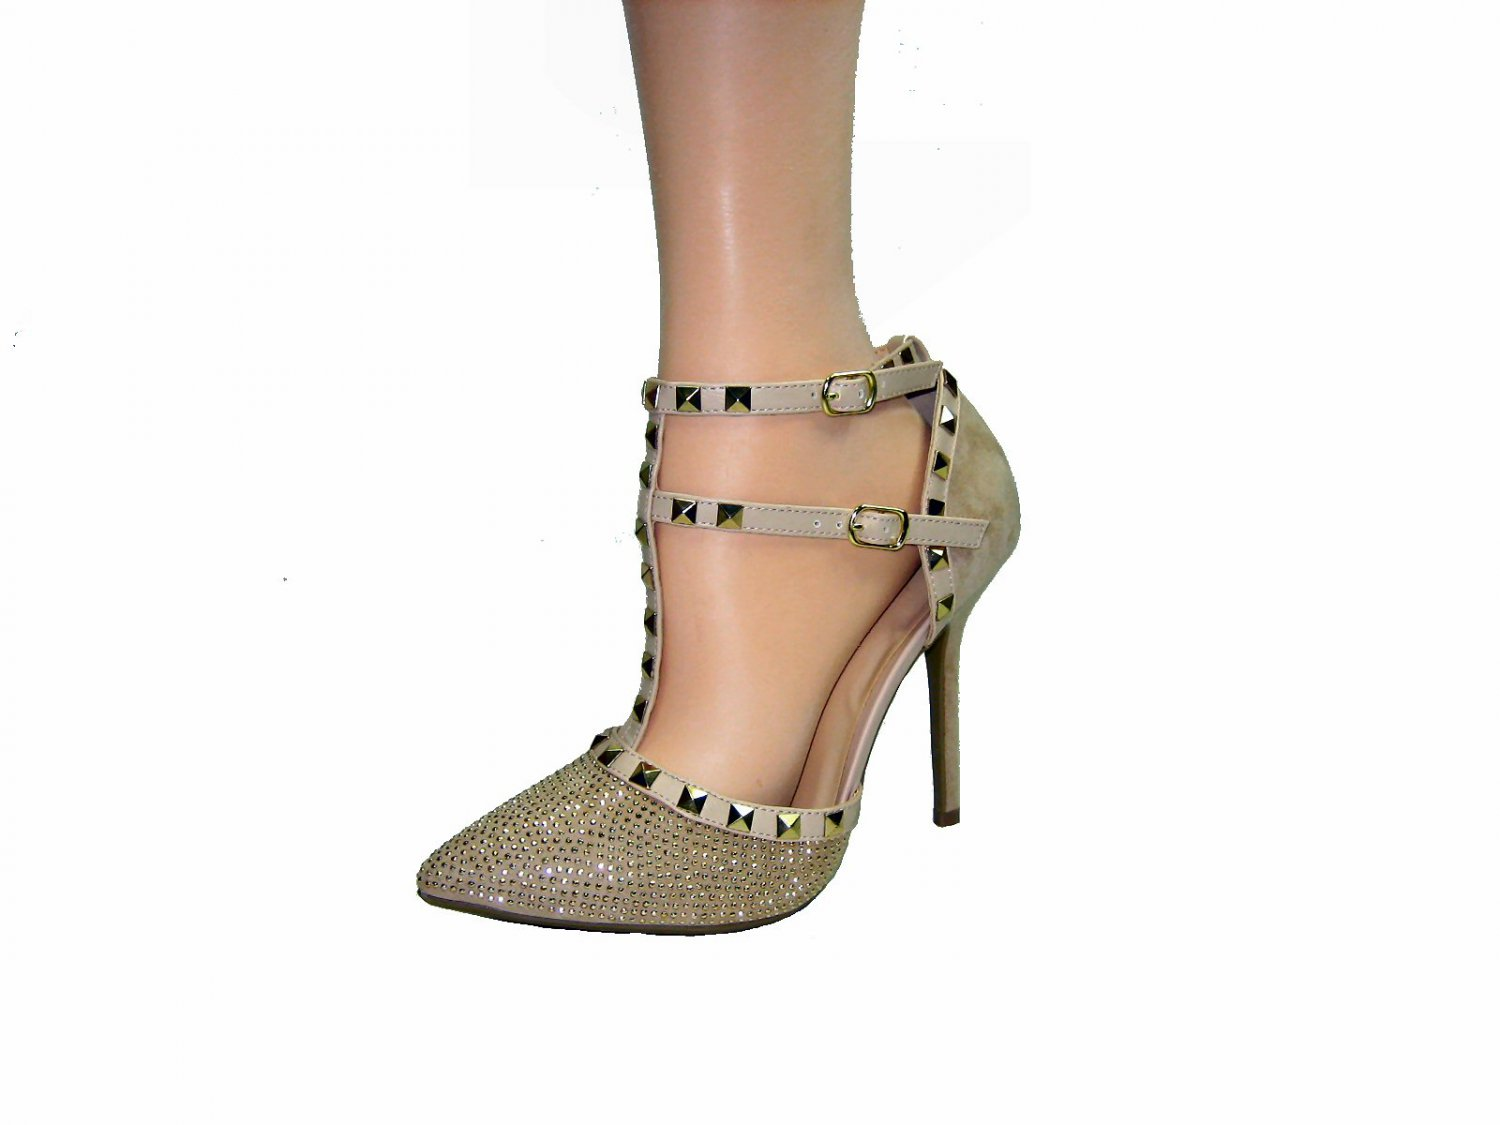 Wild Diva Adora-64C strappy rock stud 4.5 inch stiletto sparkly toe v-suede gold pumps size 8.5